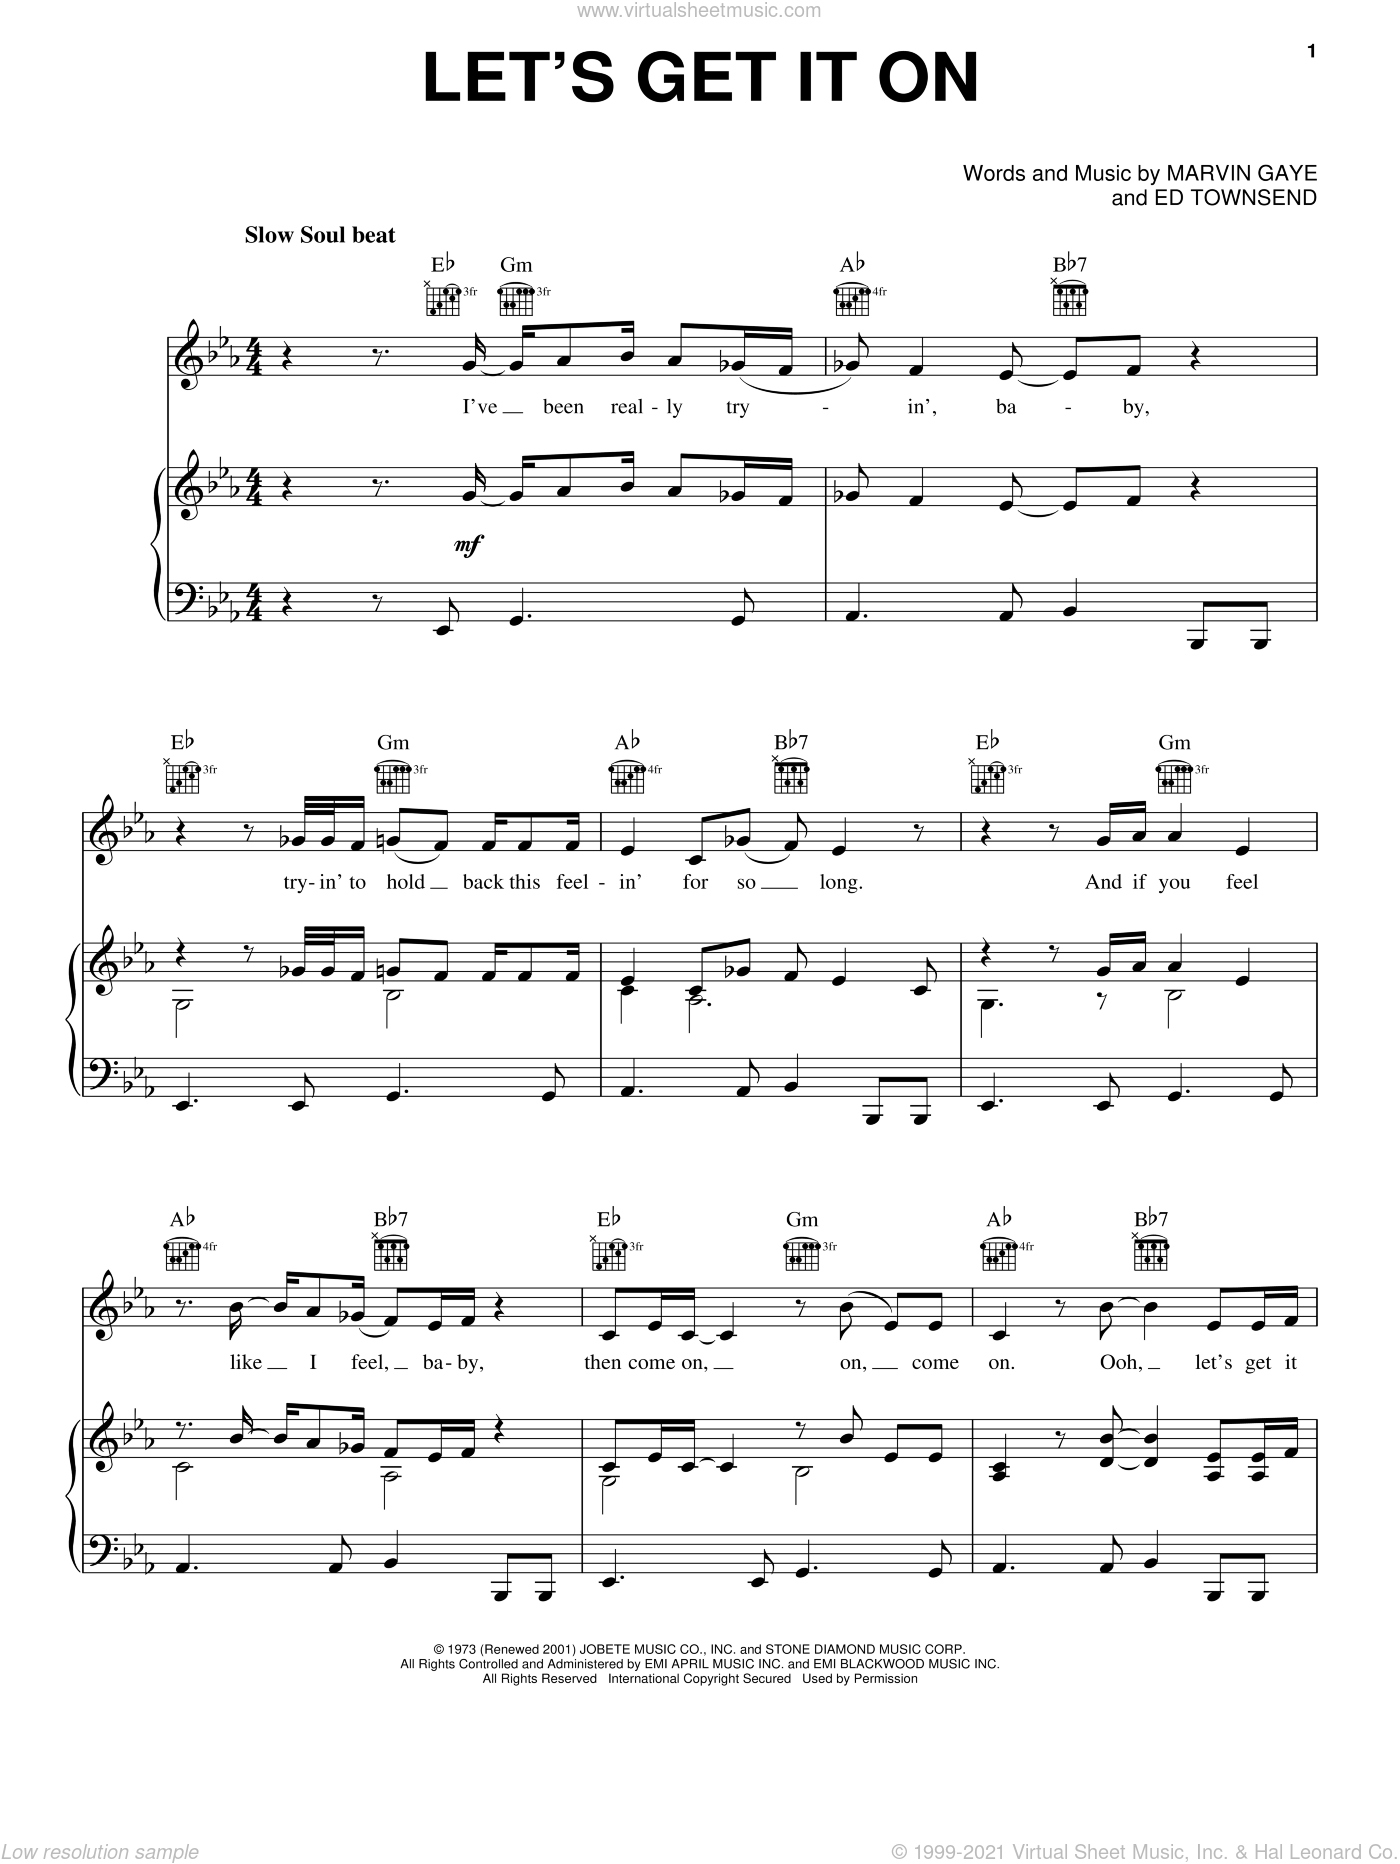 Let's Get It On sheet music for voice, piano or guitar by Marvin Gaye and Ed Townsend, intermediate